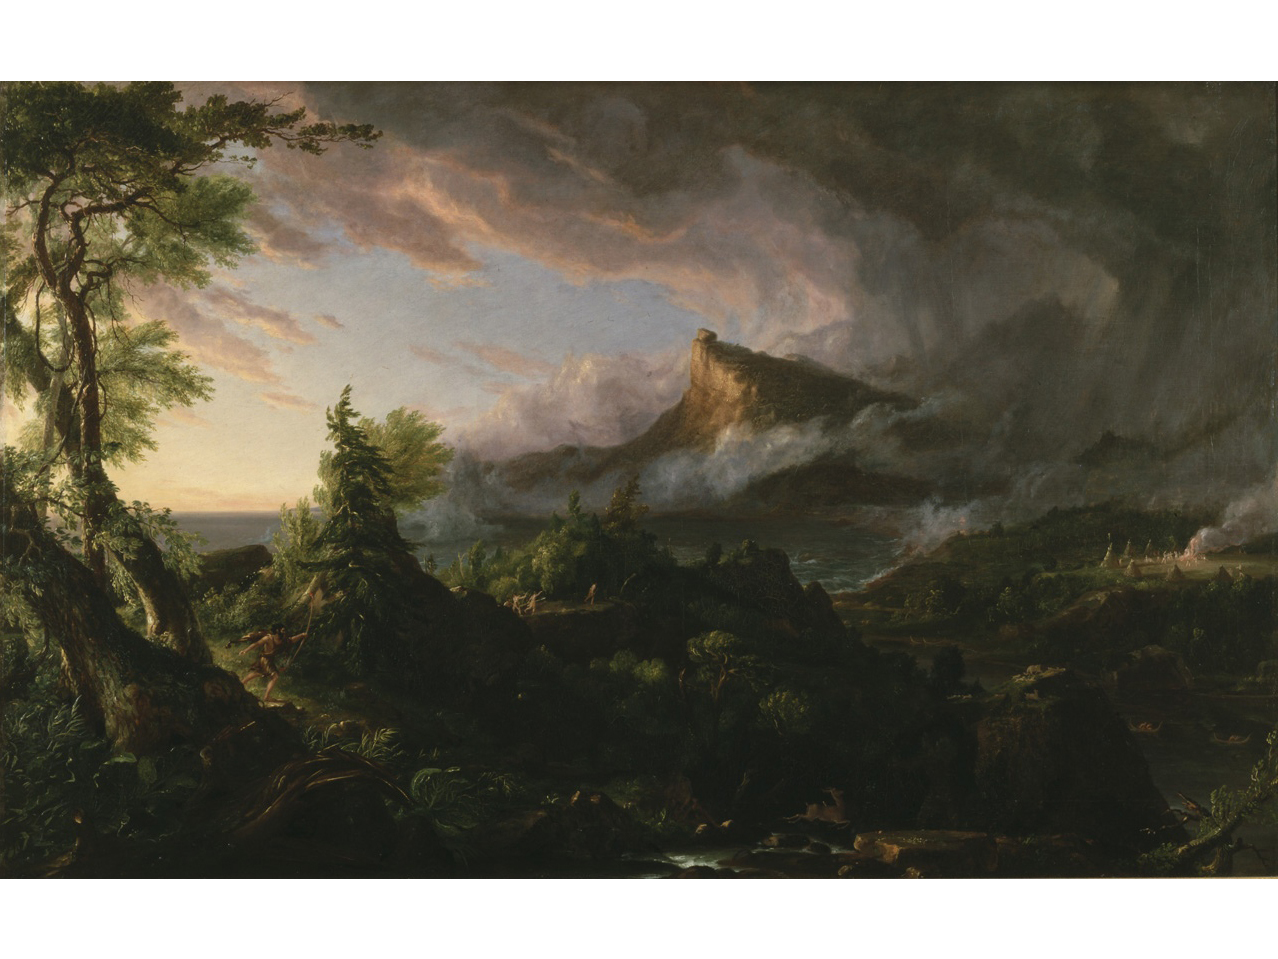 The Course of Empire: Destruction (1836), Thomas Cole